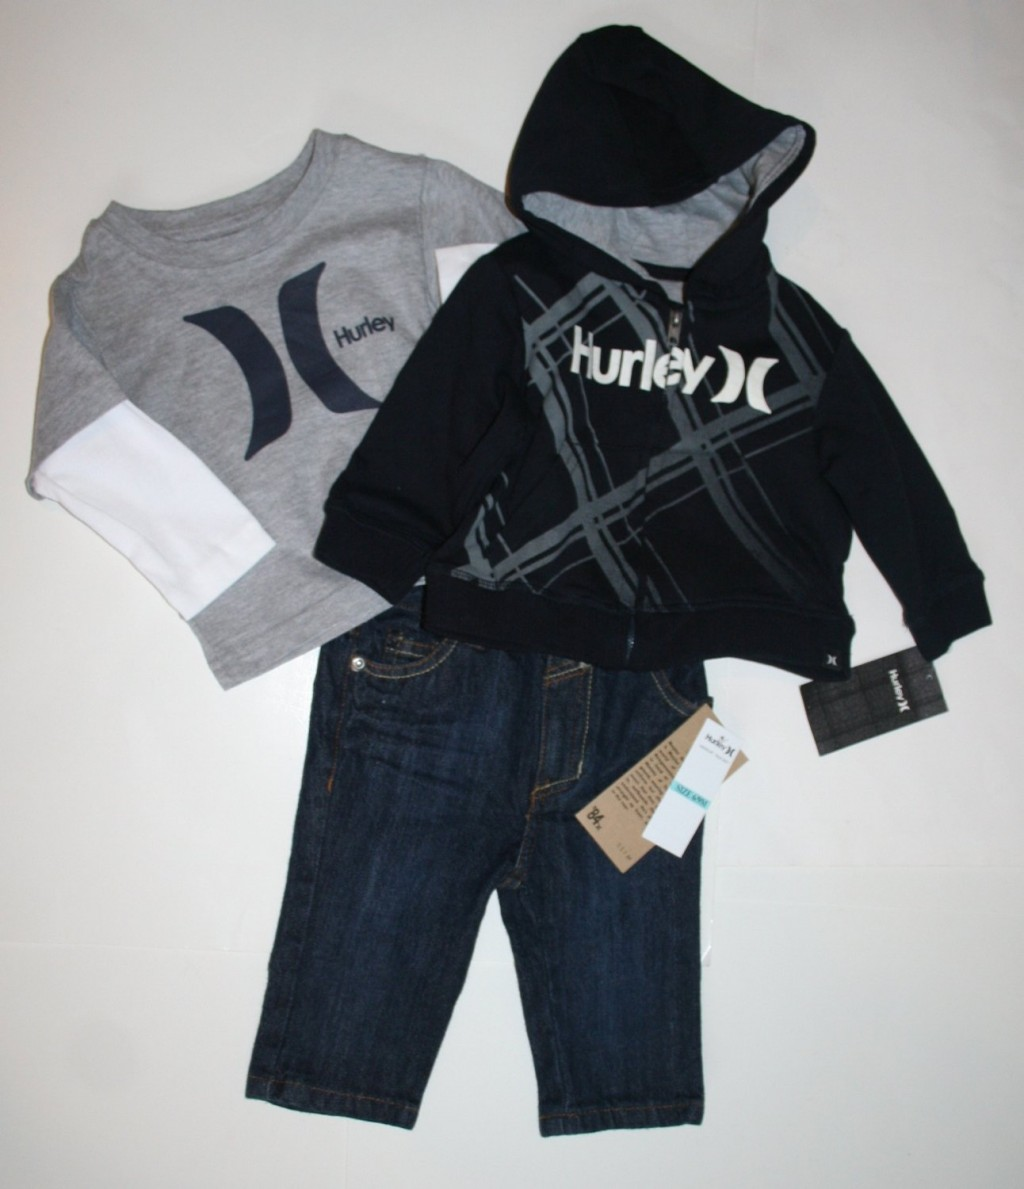 Hurley Baby Clothes Buy Hurley Baby Clothing line